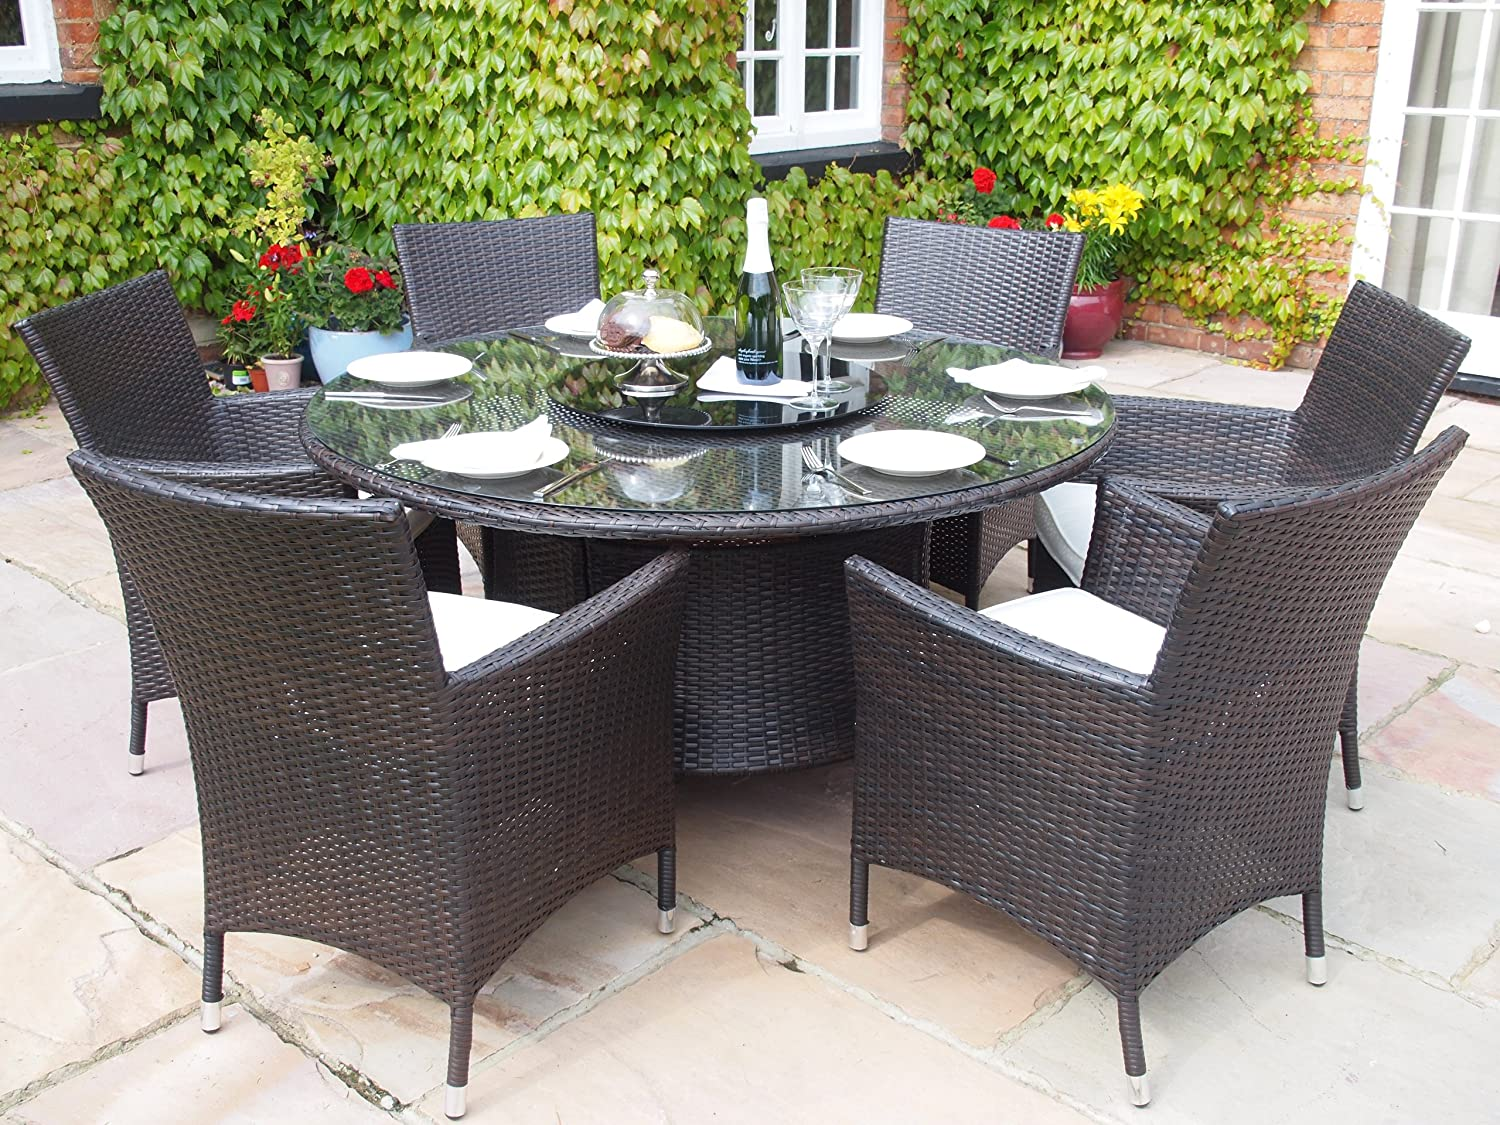 Sidney Grey Rattan Garden Or Conservatory Round Dining Table And 6 Chairs  Furniture Set: Amazon.co.uk: Garden U0026 Outdoors